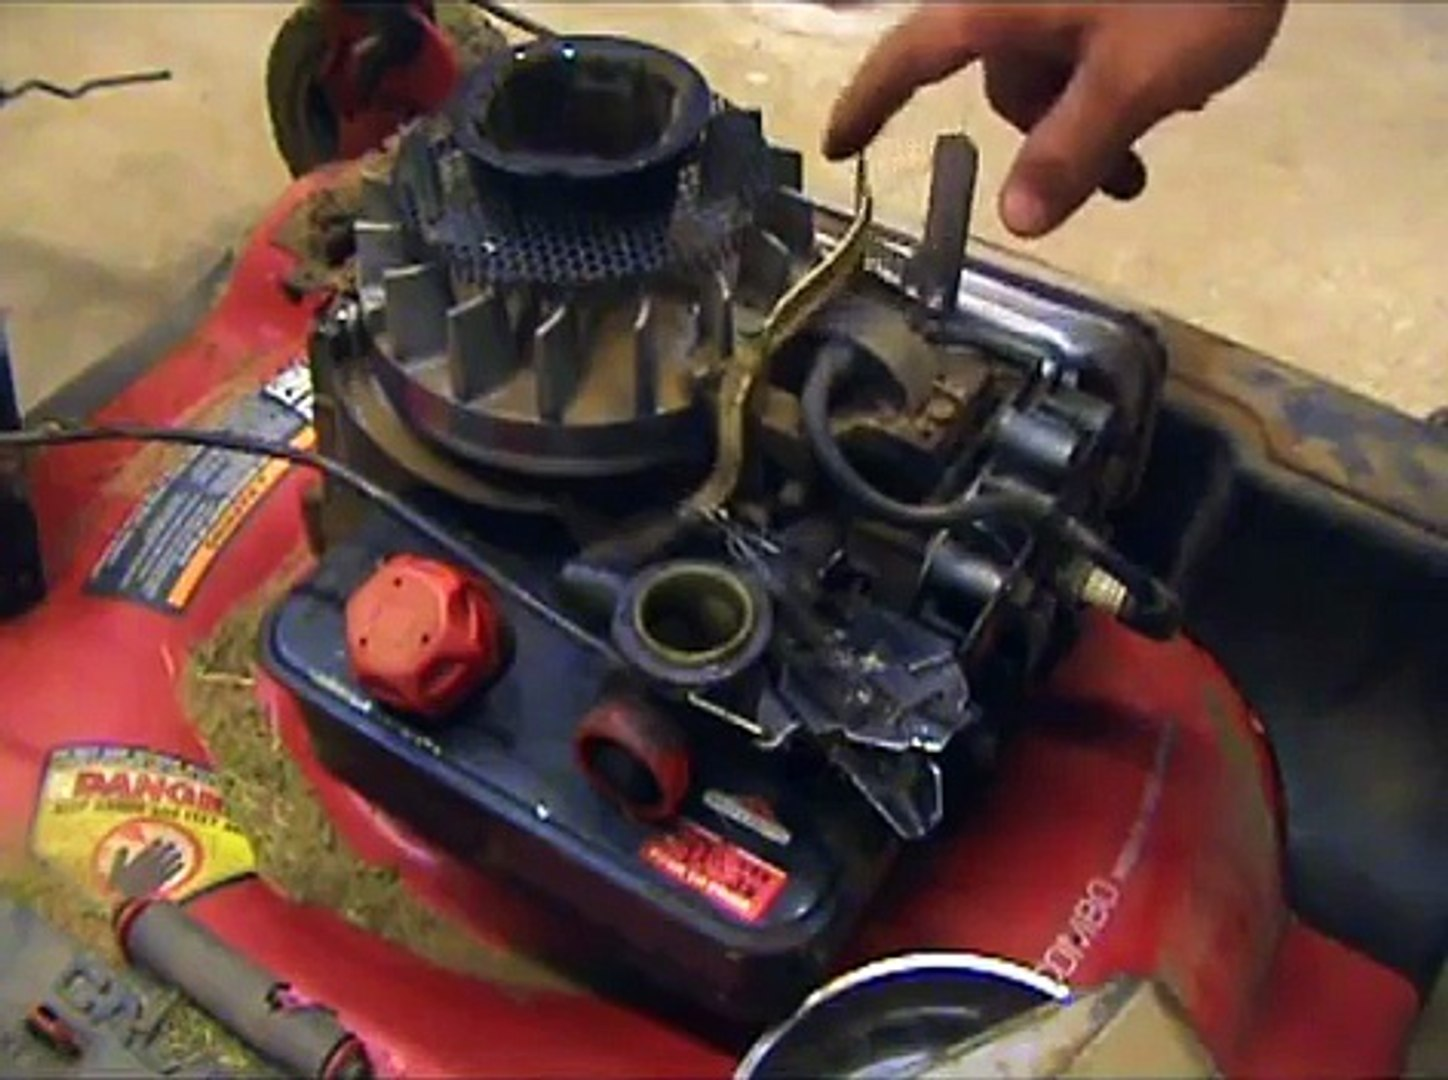 Linkage Spring Replacement On A Briggs Stratton Quattro 4 Hp Murray Lawn Mower